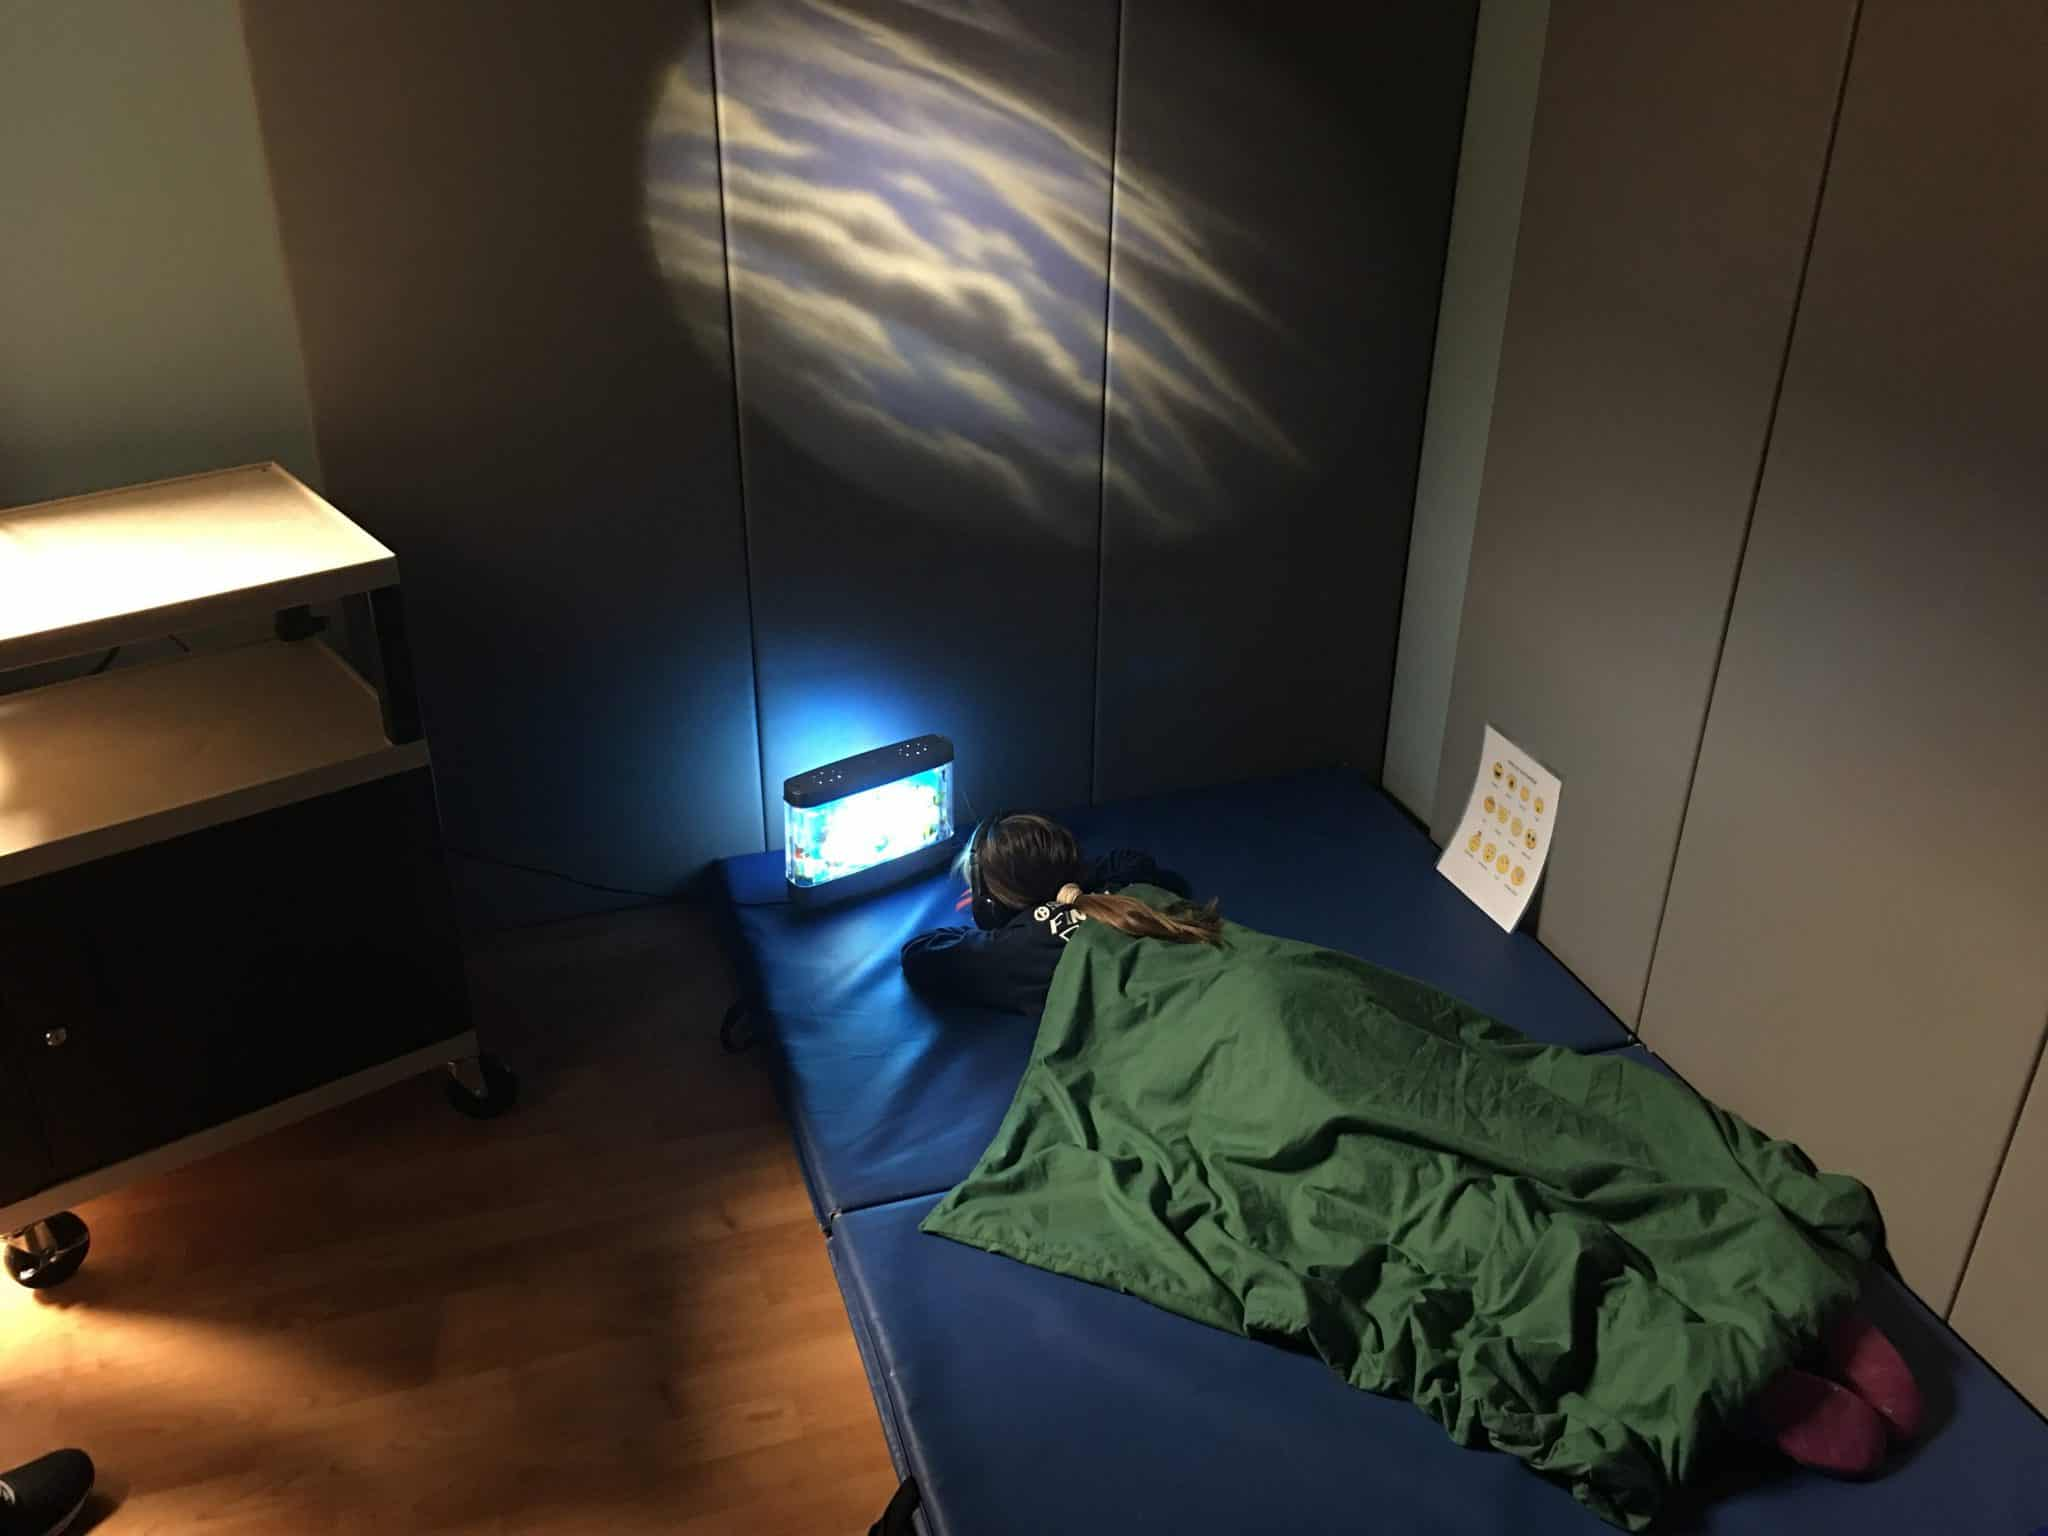 Patient uses sensory deprivation room